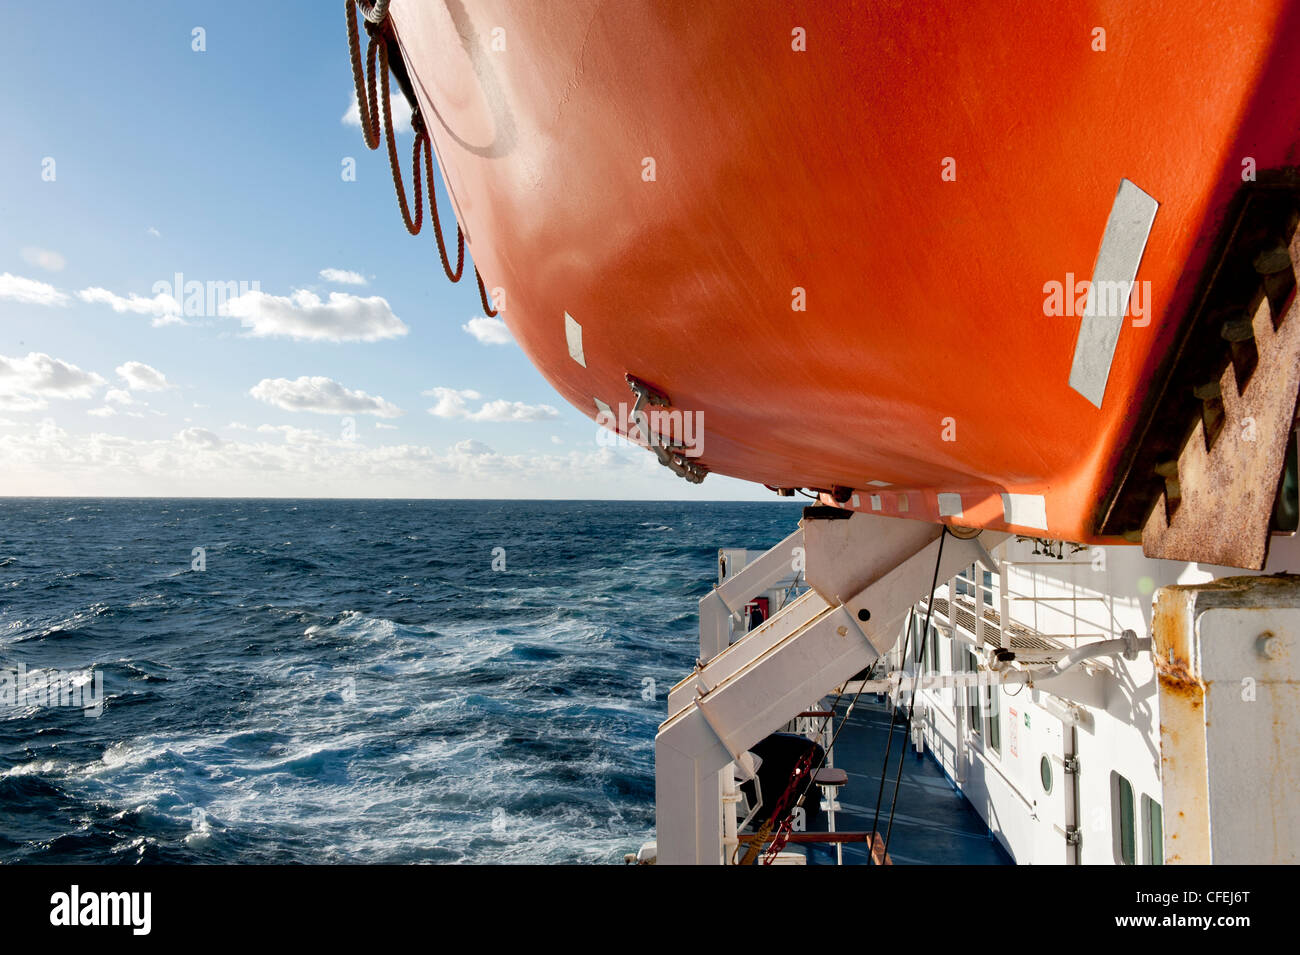 Lifeboat on a ship, the RMS St Helena traveling from St Helena in the South Atlantic Ocean to Cape Town South Africa - Stock Image